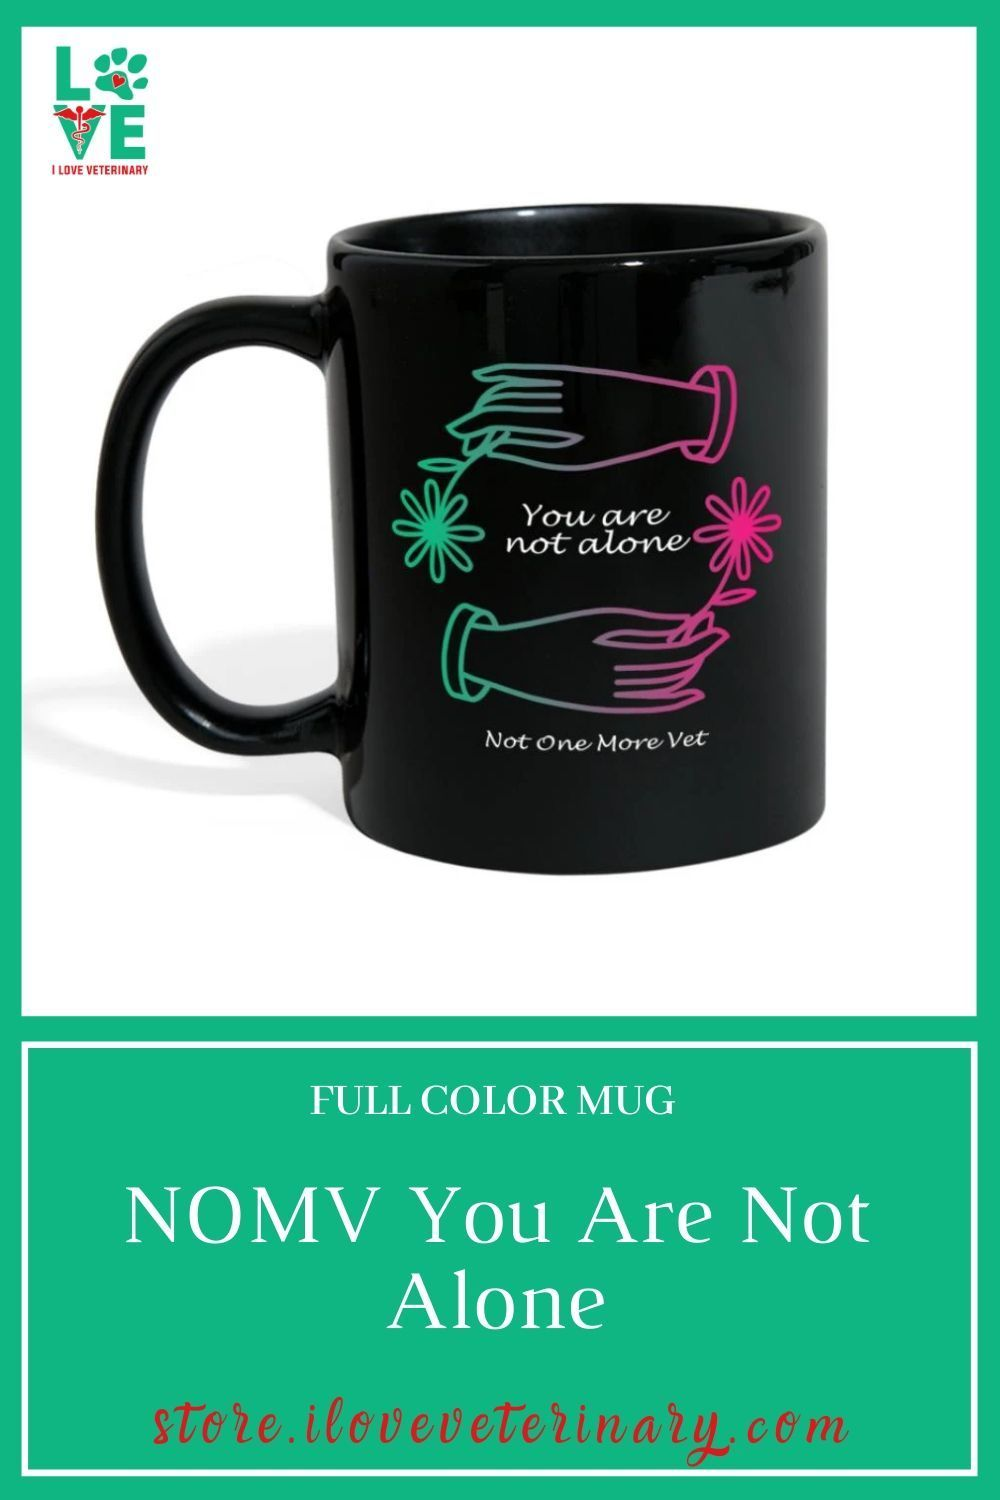 Nomv you are not alone full color mug in 2020 mugs